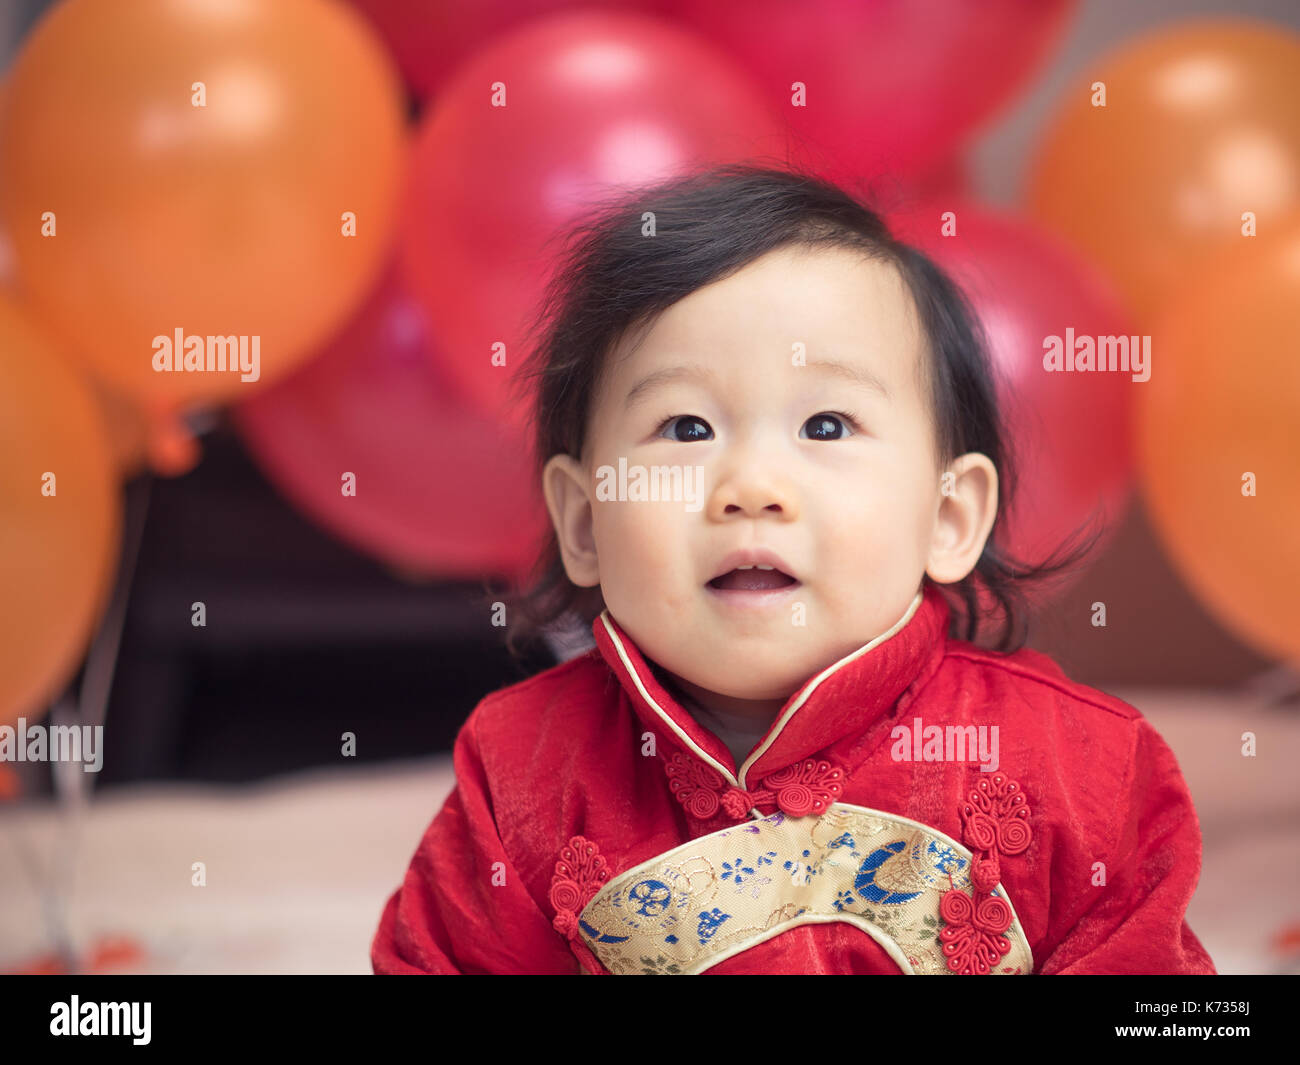 64c99cfe16 cute Asian baby girl with traditional dressing for her first birthday party  - Stock Image